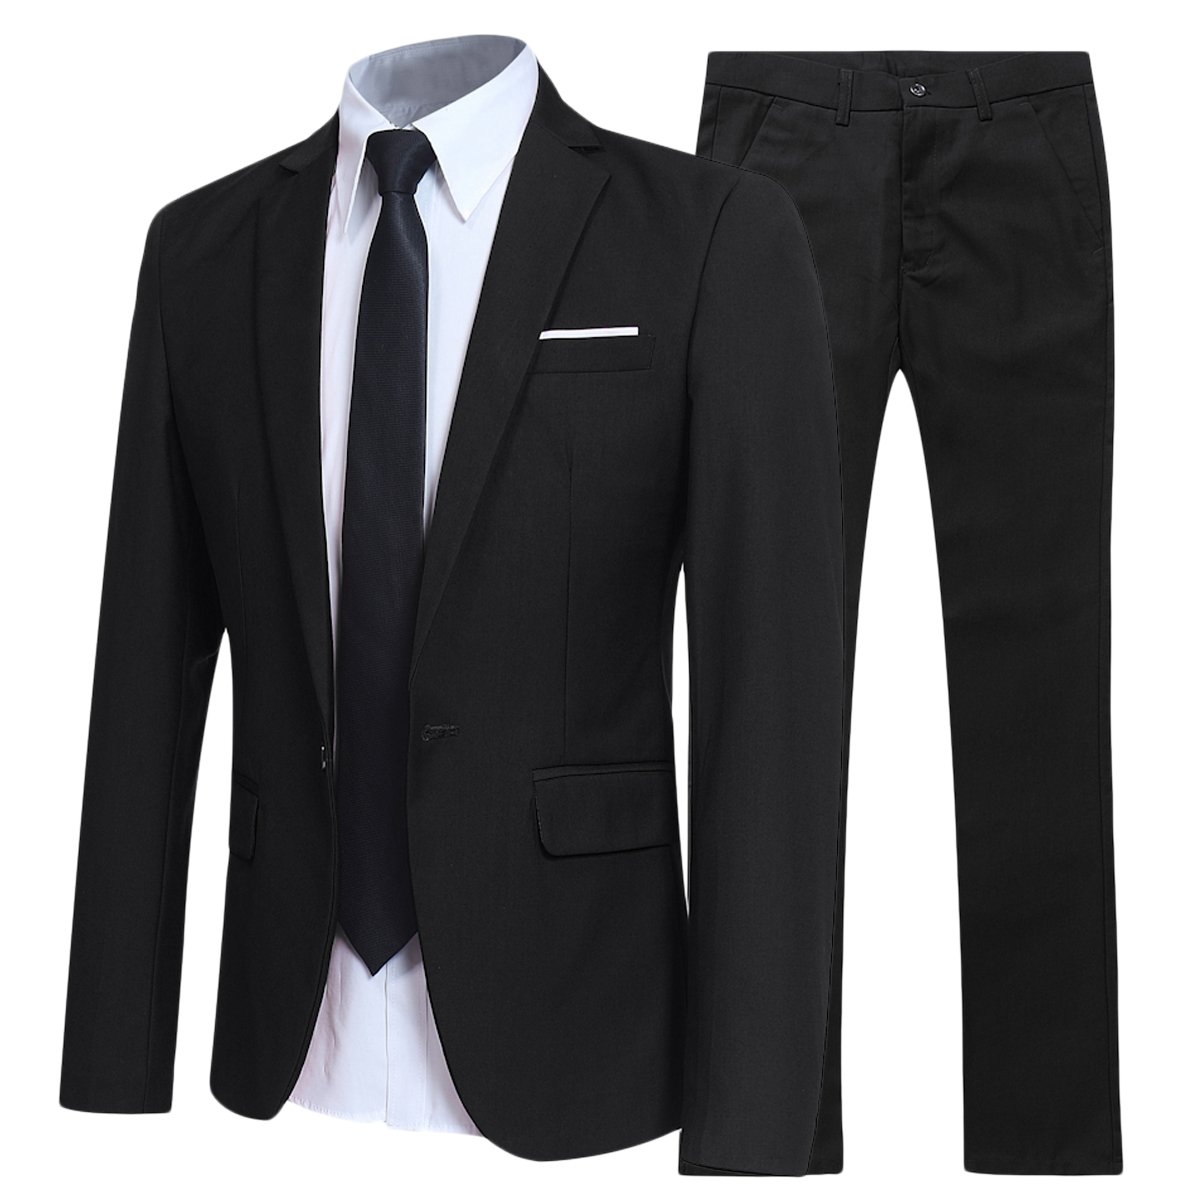 YFFUSHI Slim Fit 2 Piece Suit for Men One Button Casual/Formal/Wedding Tuxedo,XXX-Large,Black